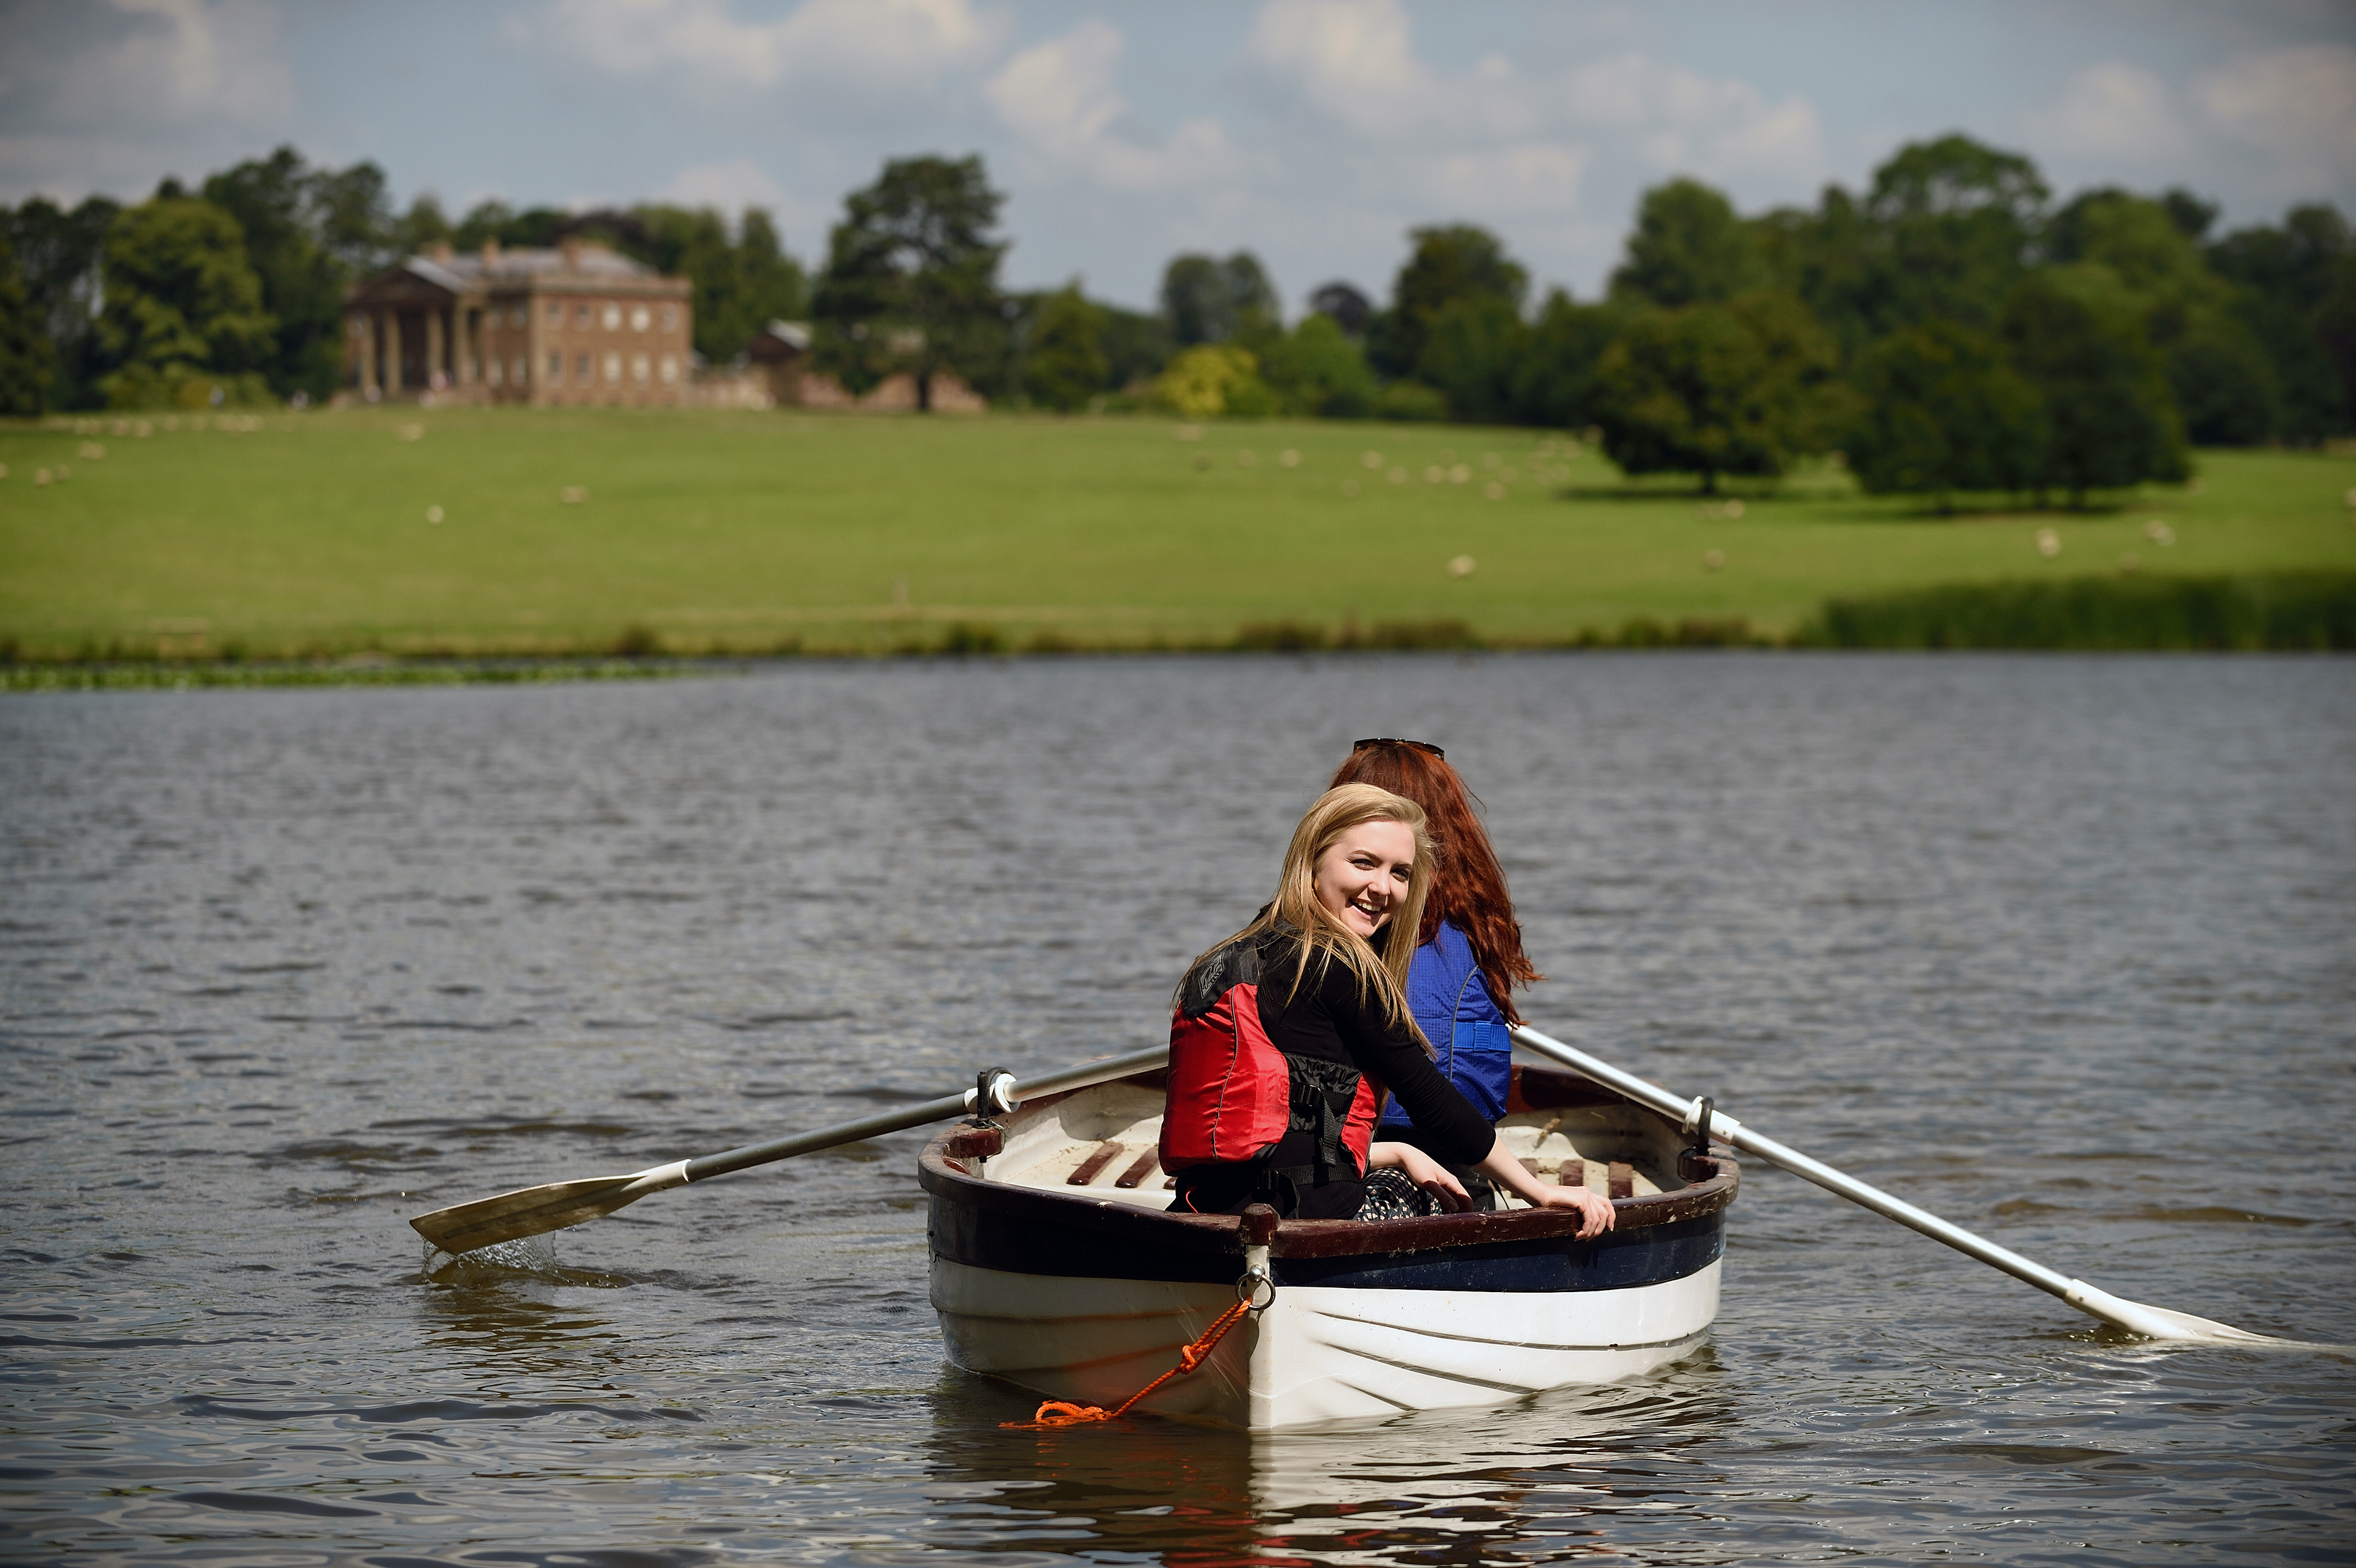 Visitors take to the water on Berrington Pool (John Millar/National Trust Images/PA)